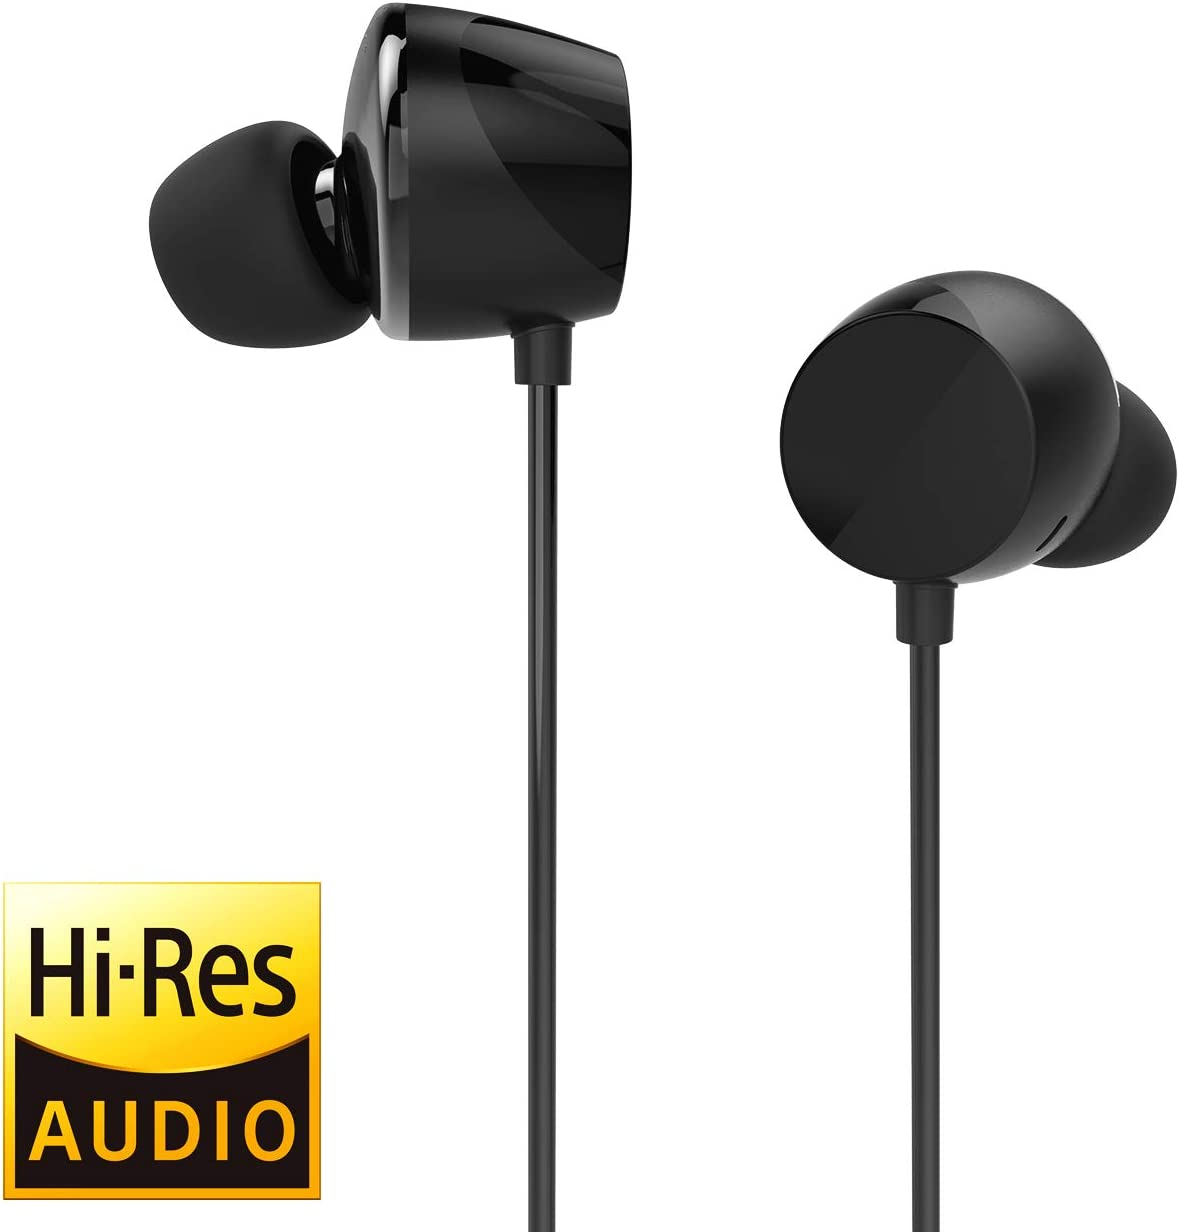 TUNAI Drum Hi-Resolution Audiophile in-Ear Earbud Headphones Powerful Bass and Lively Sound Stage with Improved Noise Isolation Comfortable for Workout, Running and Great for Gaming Shadow Black